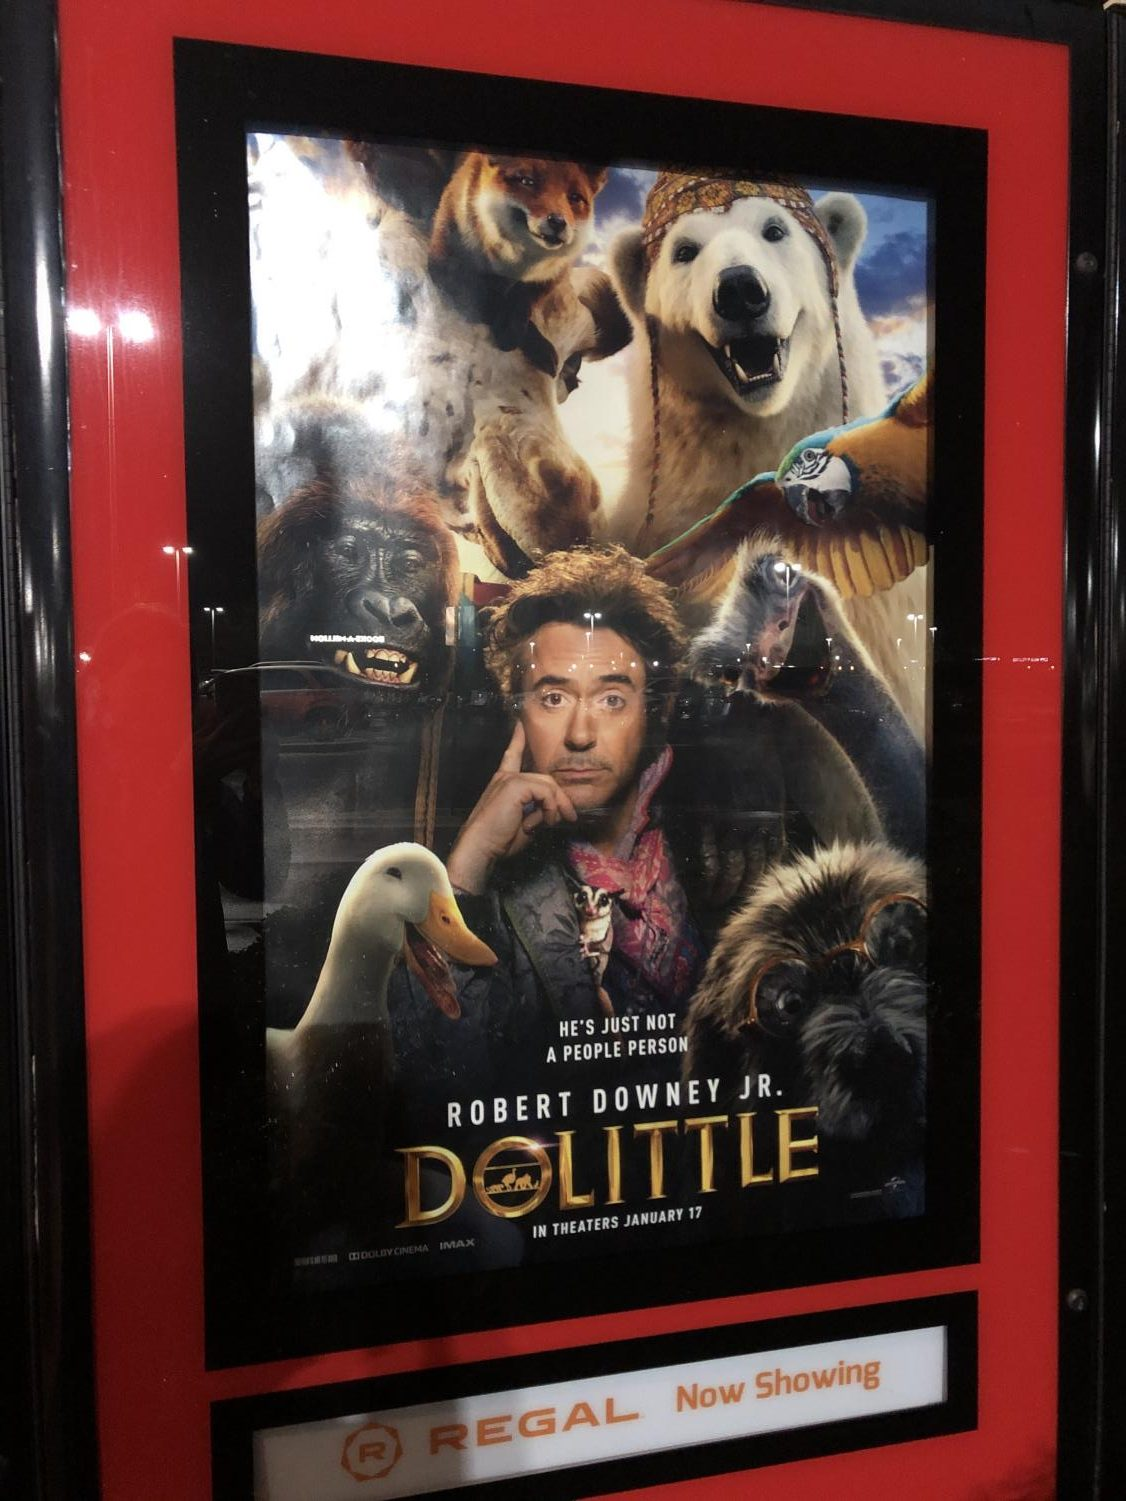 Dolittle enters theaters on January 17, 2020.